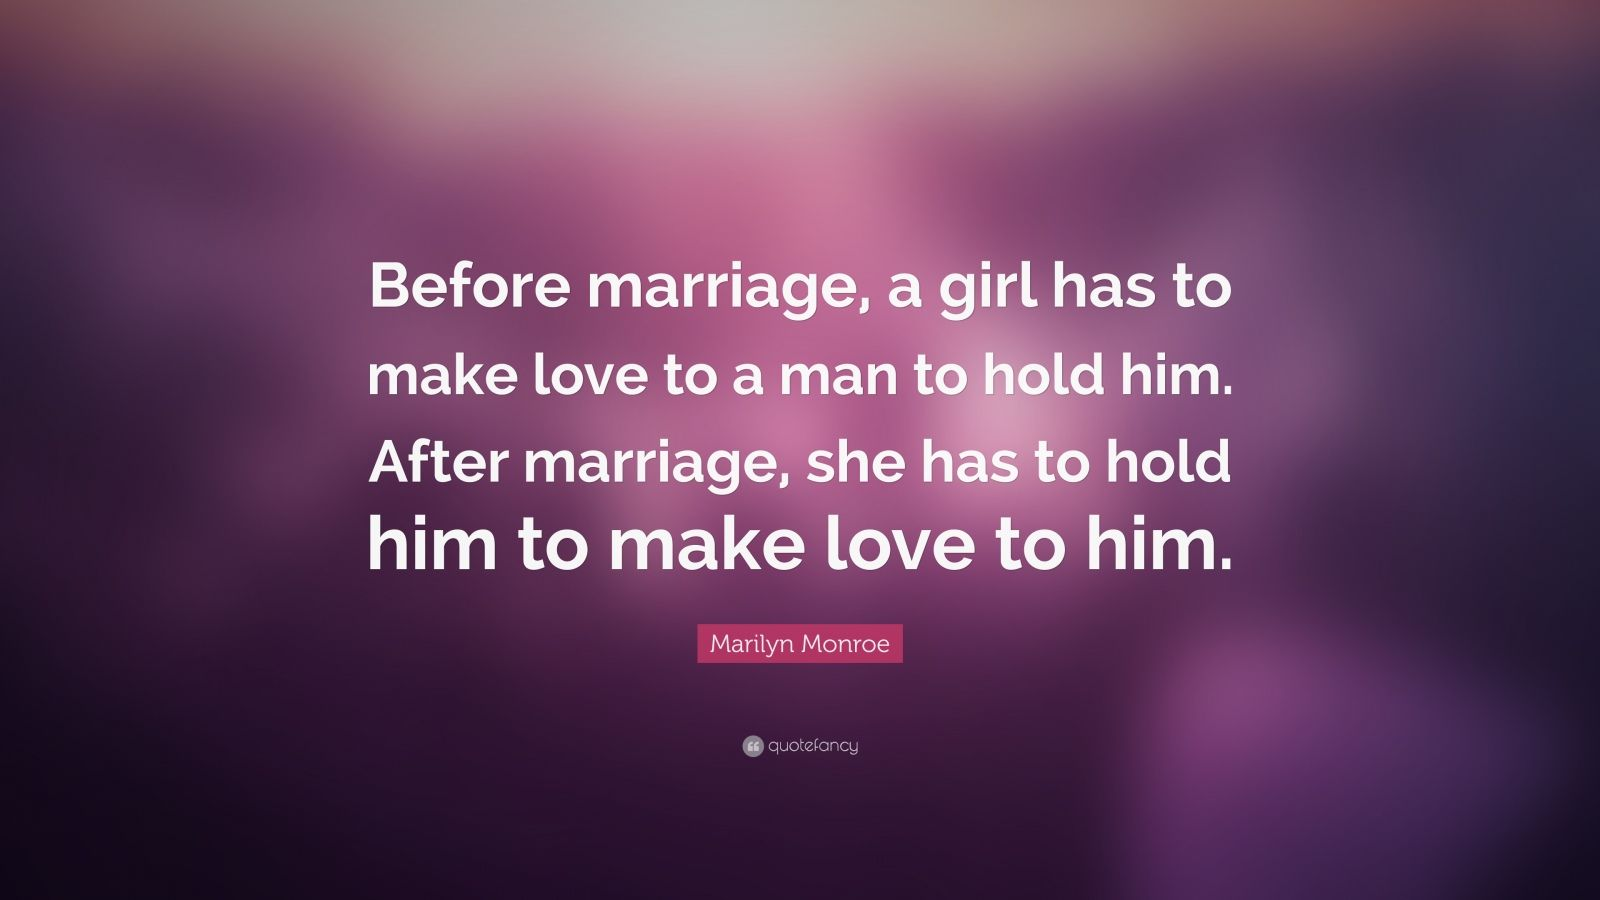 8 quotes love relationship 57 wallpapers 9086 points love quotes love